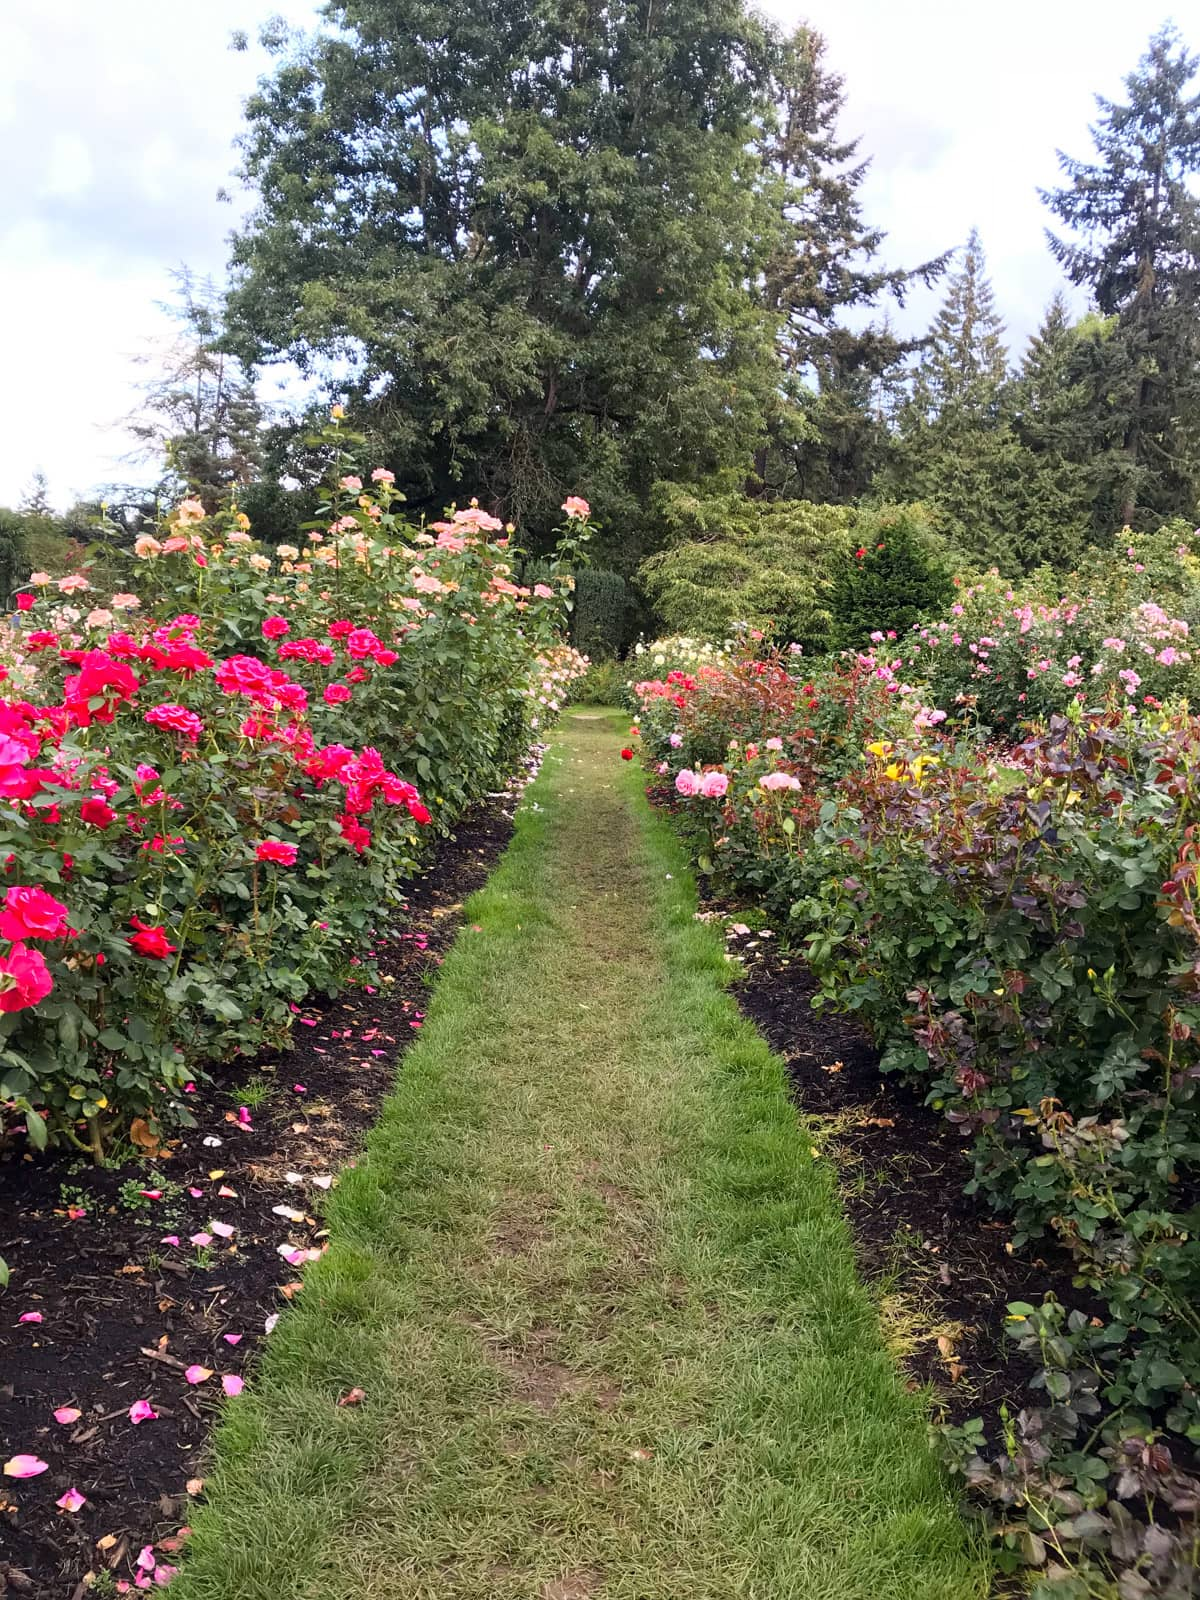 A grassy path going between two plots of rose bushes